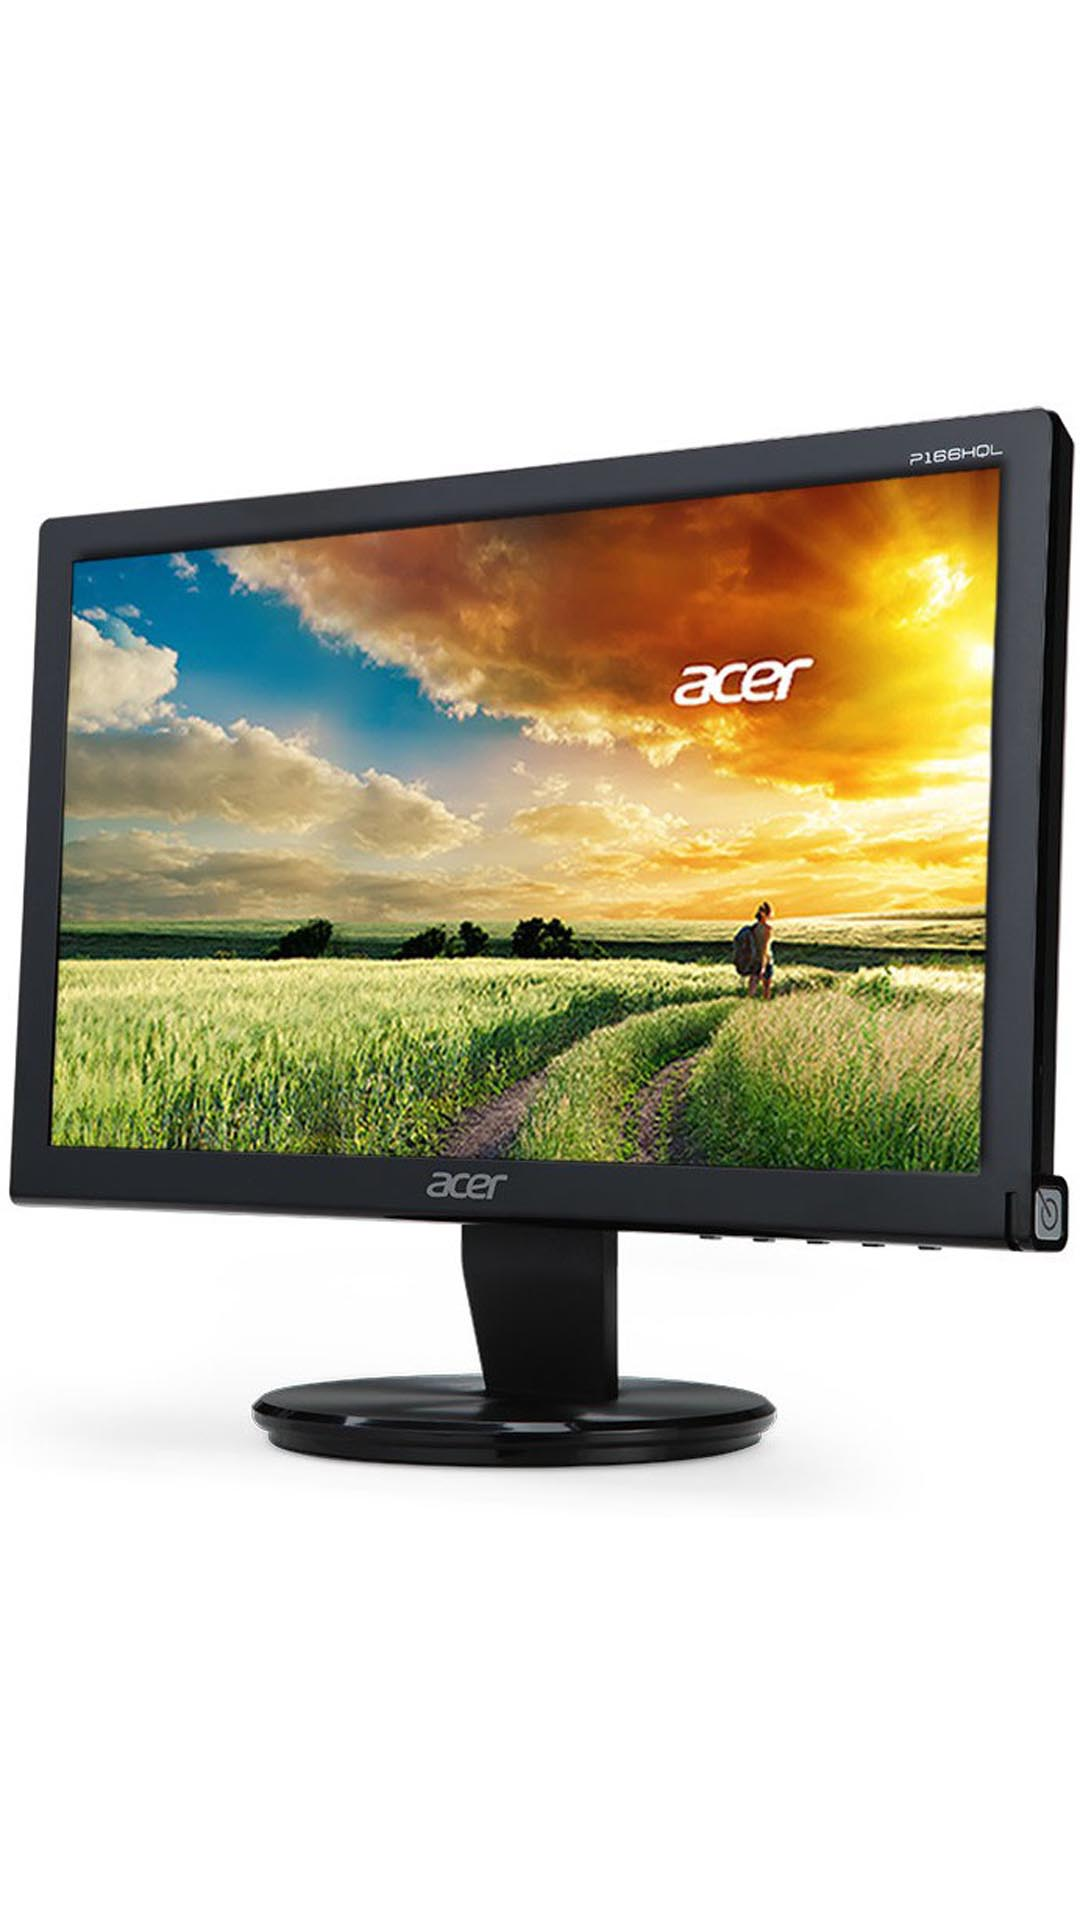 Acer P166HQL 39.6 cm (15.6) LED Backlit LCD Monitor